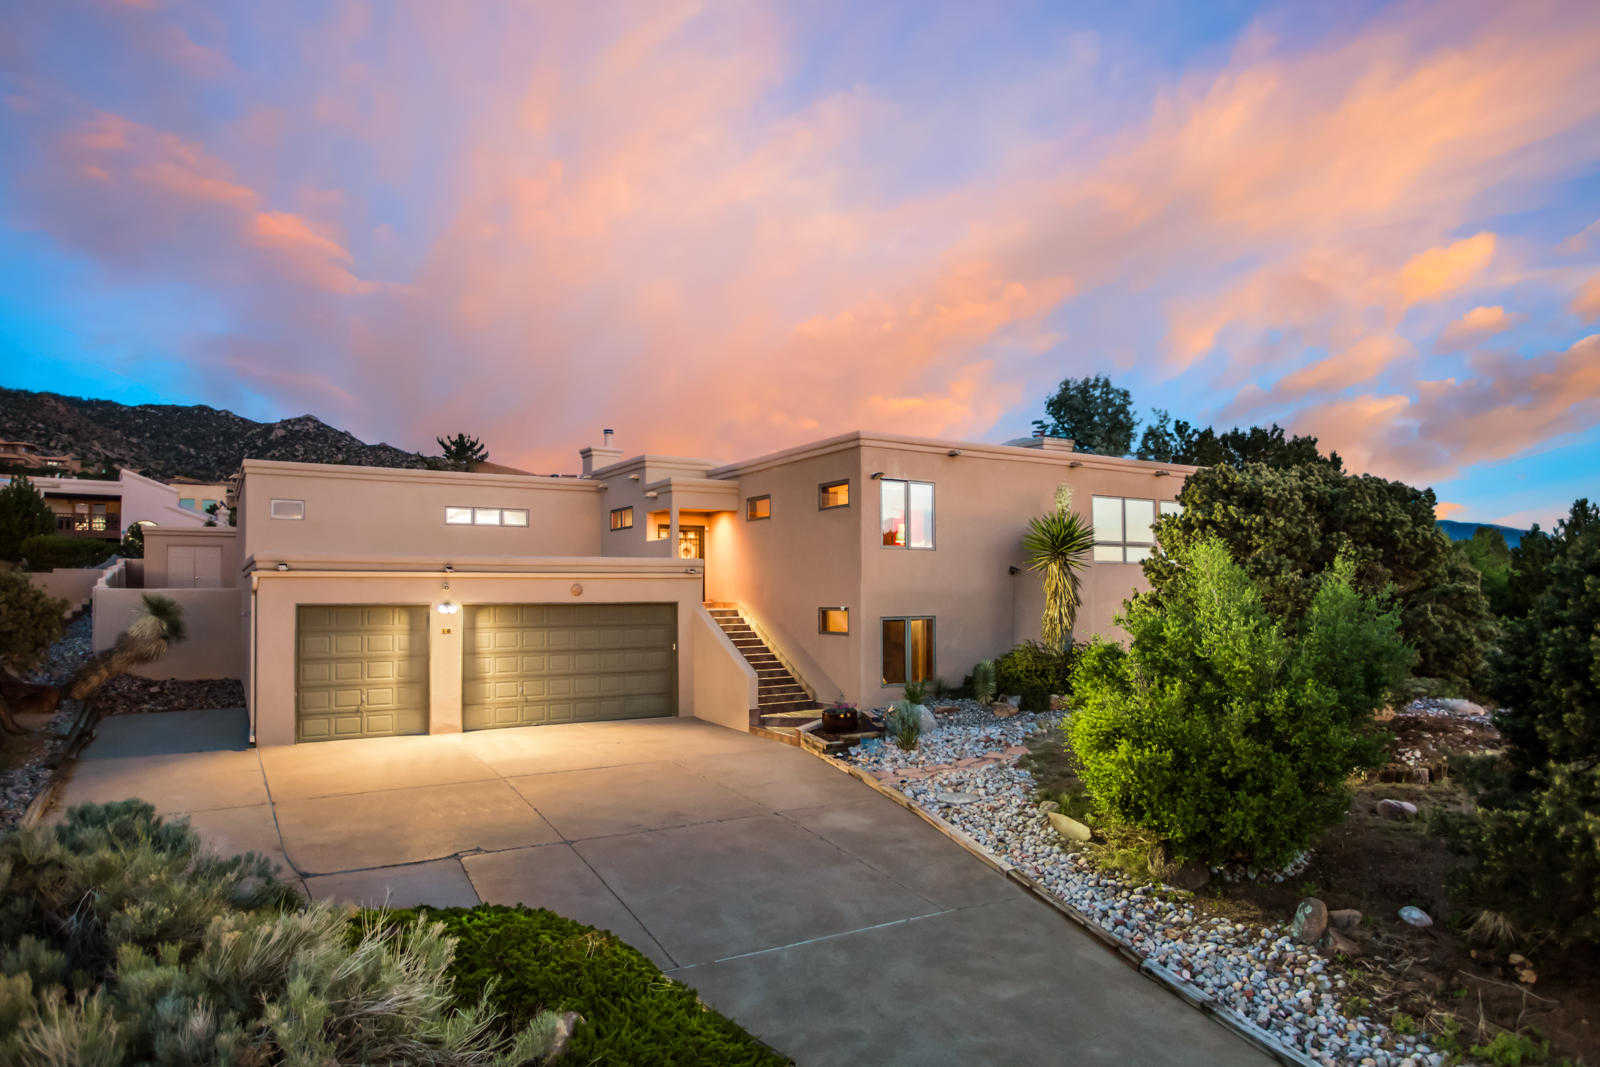 $750,000 - 5Br/4Ba -  for Sale in Sandia Heights, Albuquerque